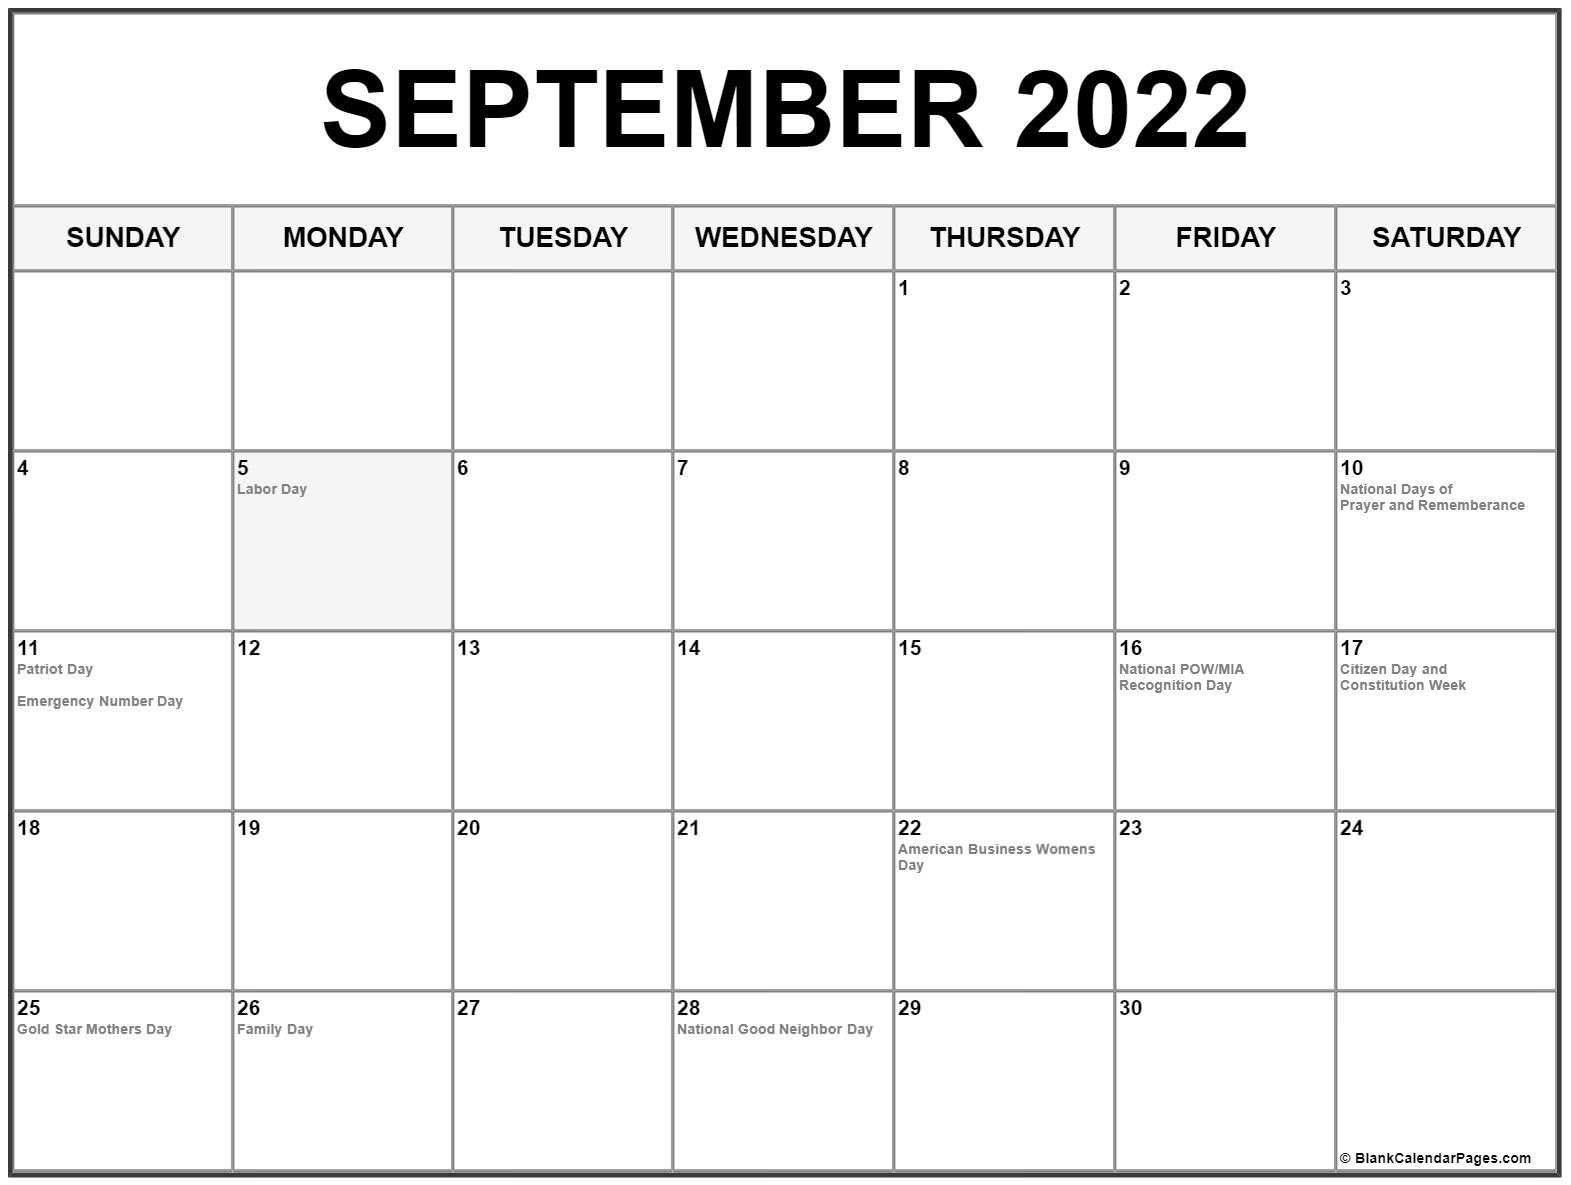 September 2022 calendar with holidays